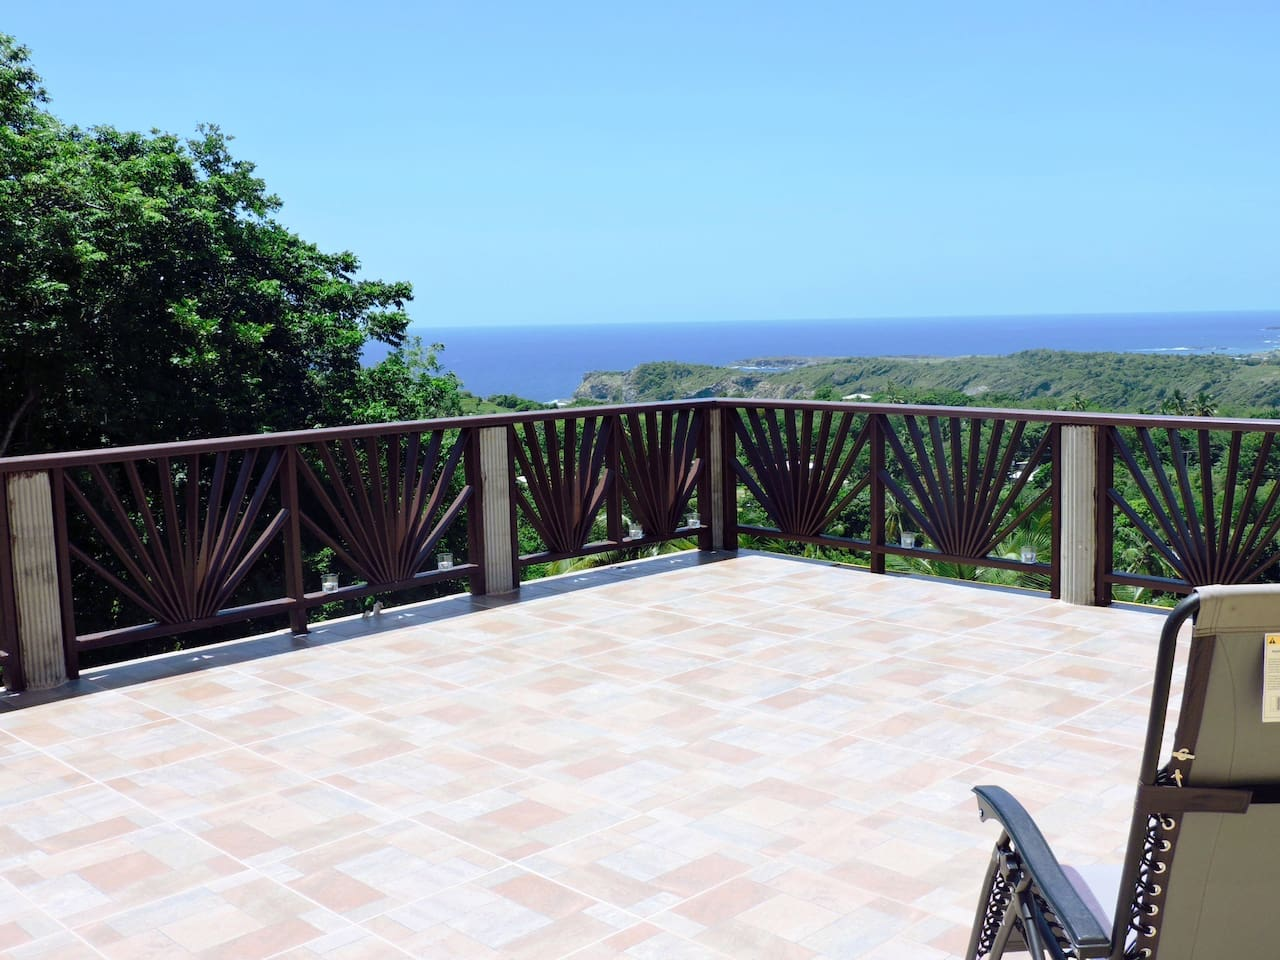 Sky Terrace with view of the ocean